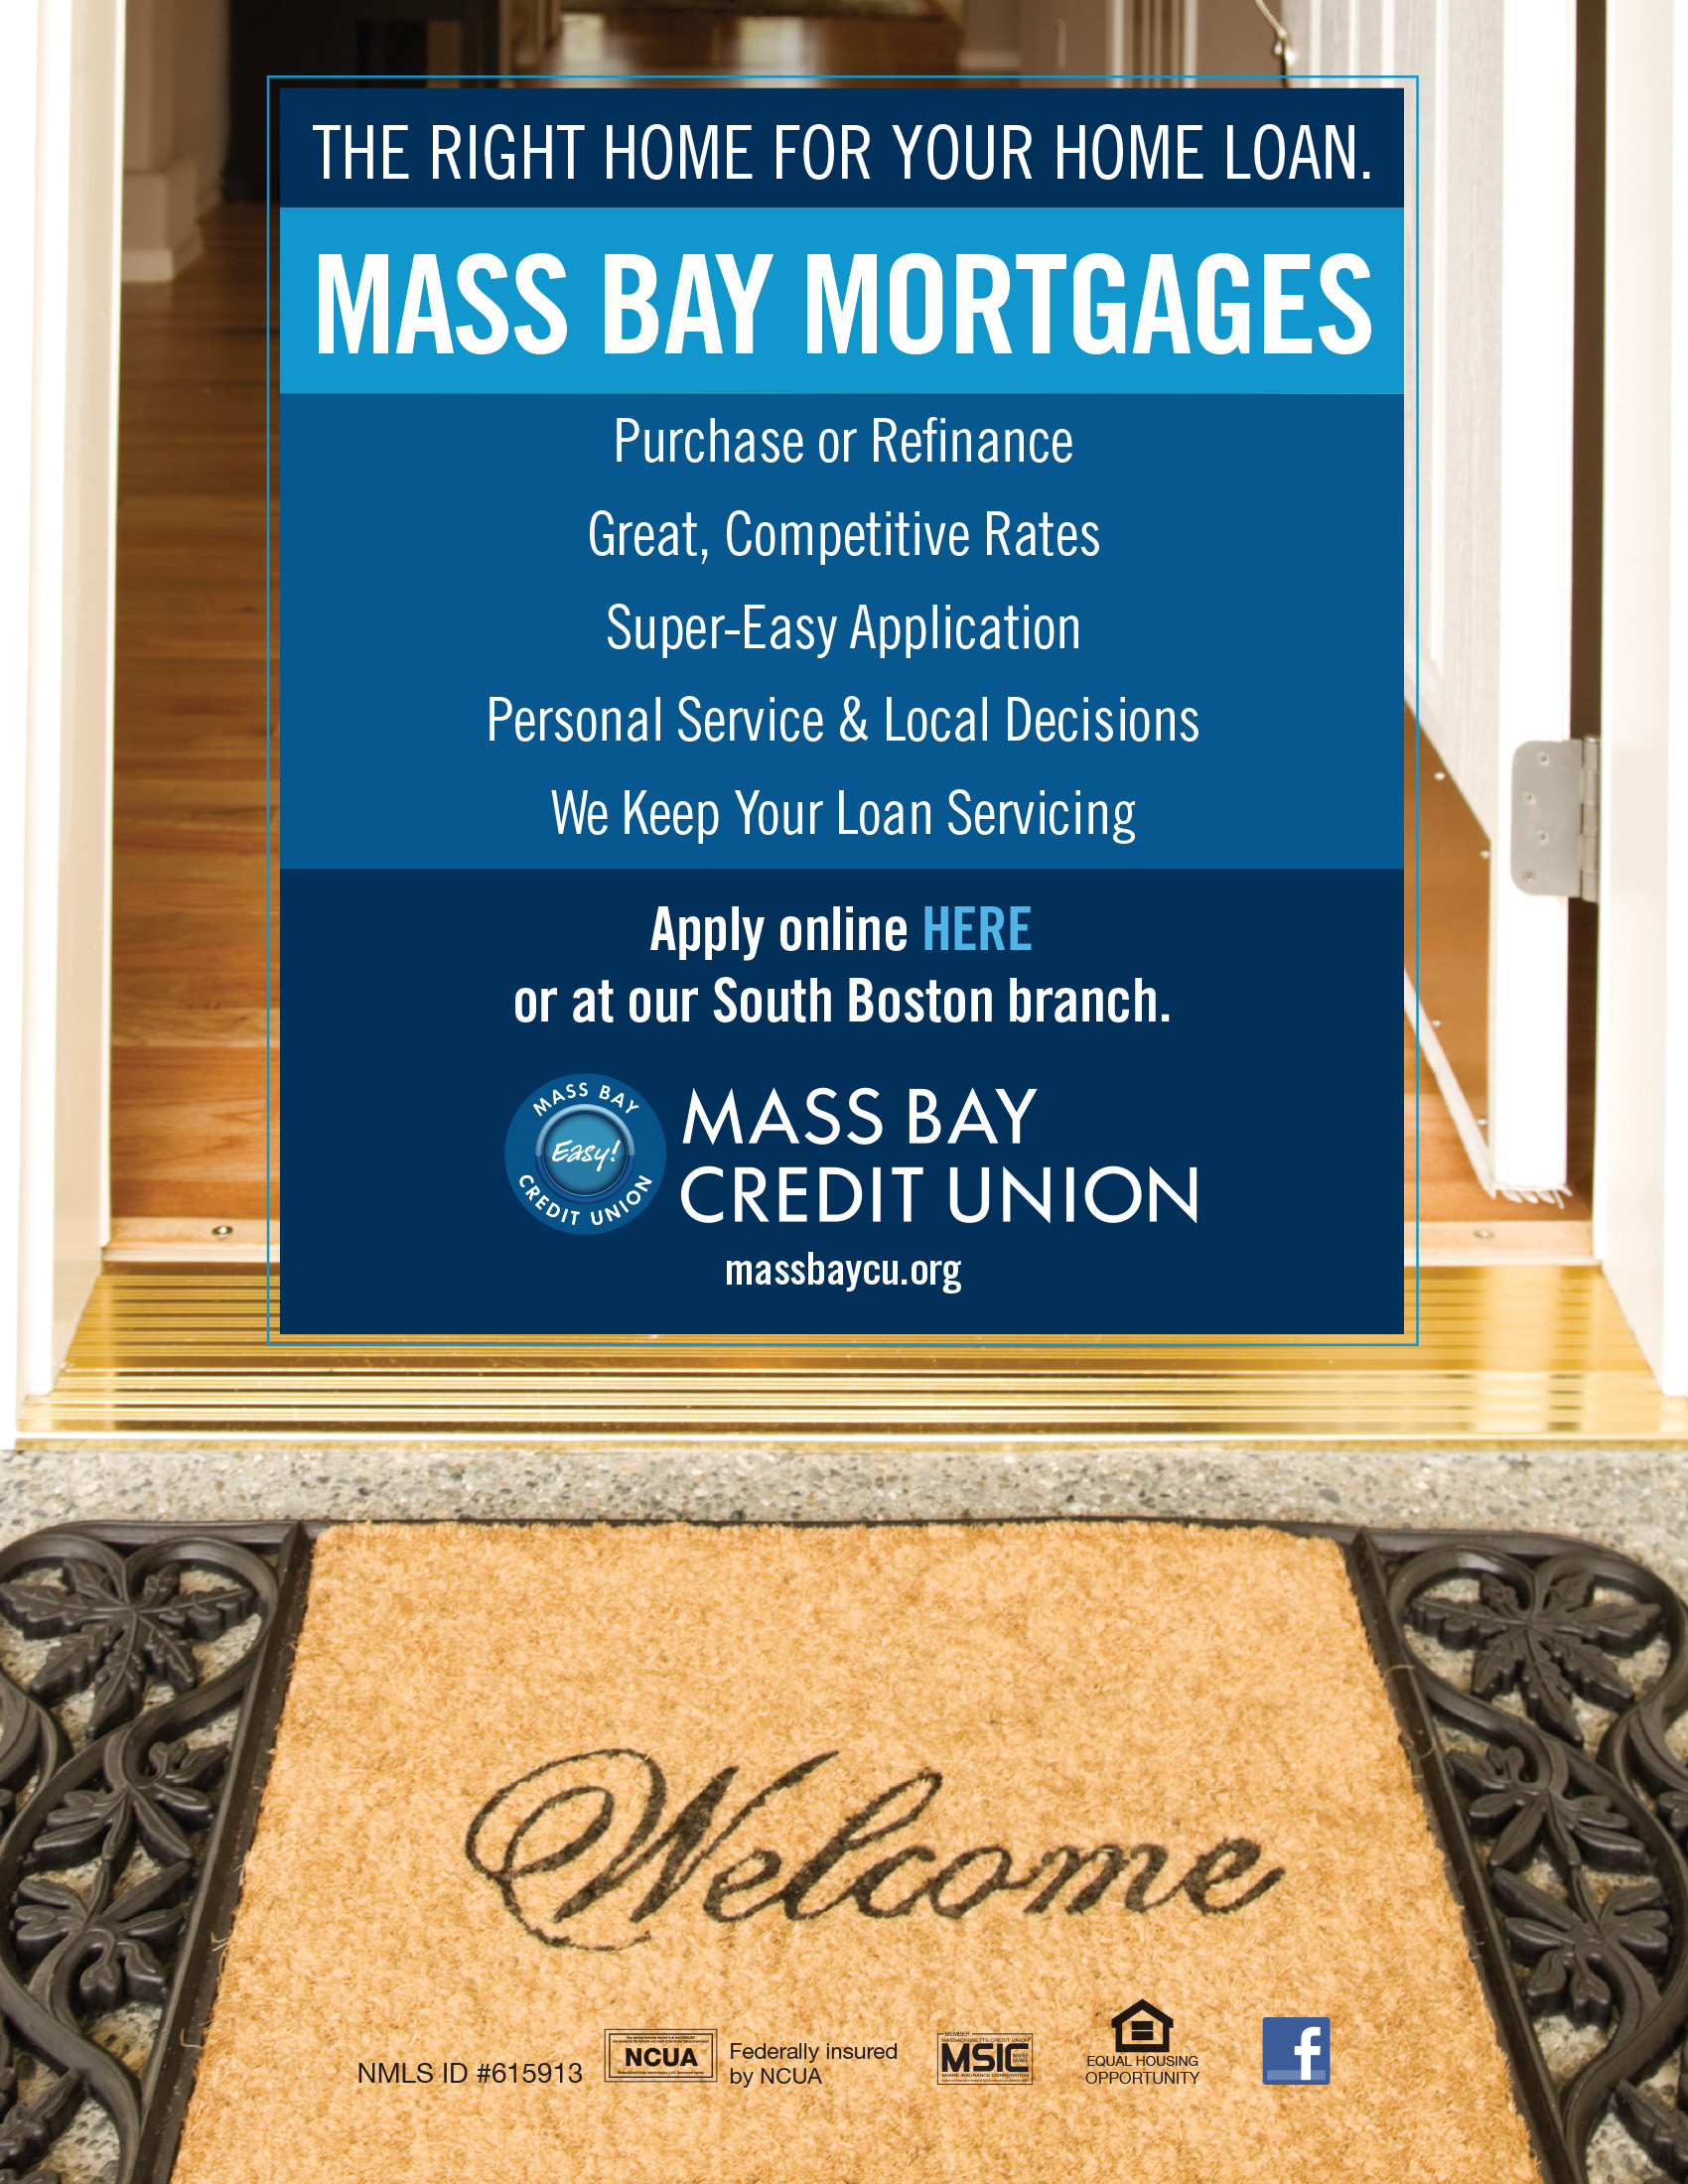 Easy mortgages with Mass Bay, purchase or refinance